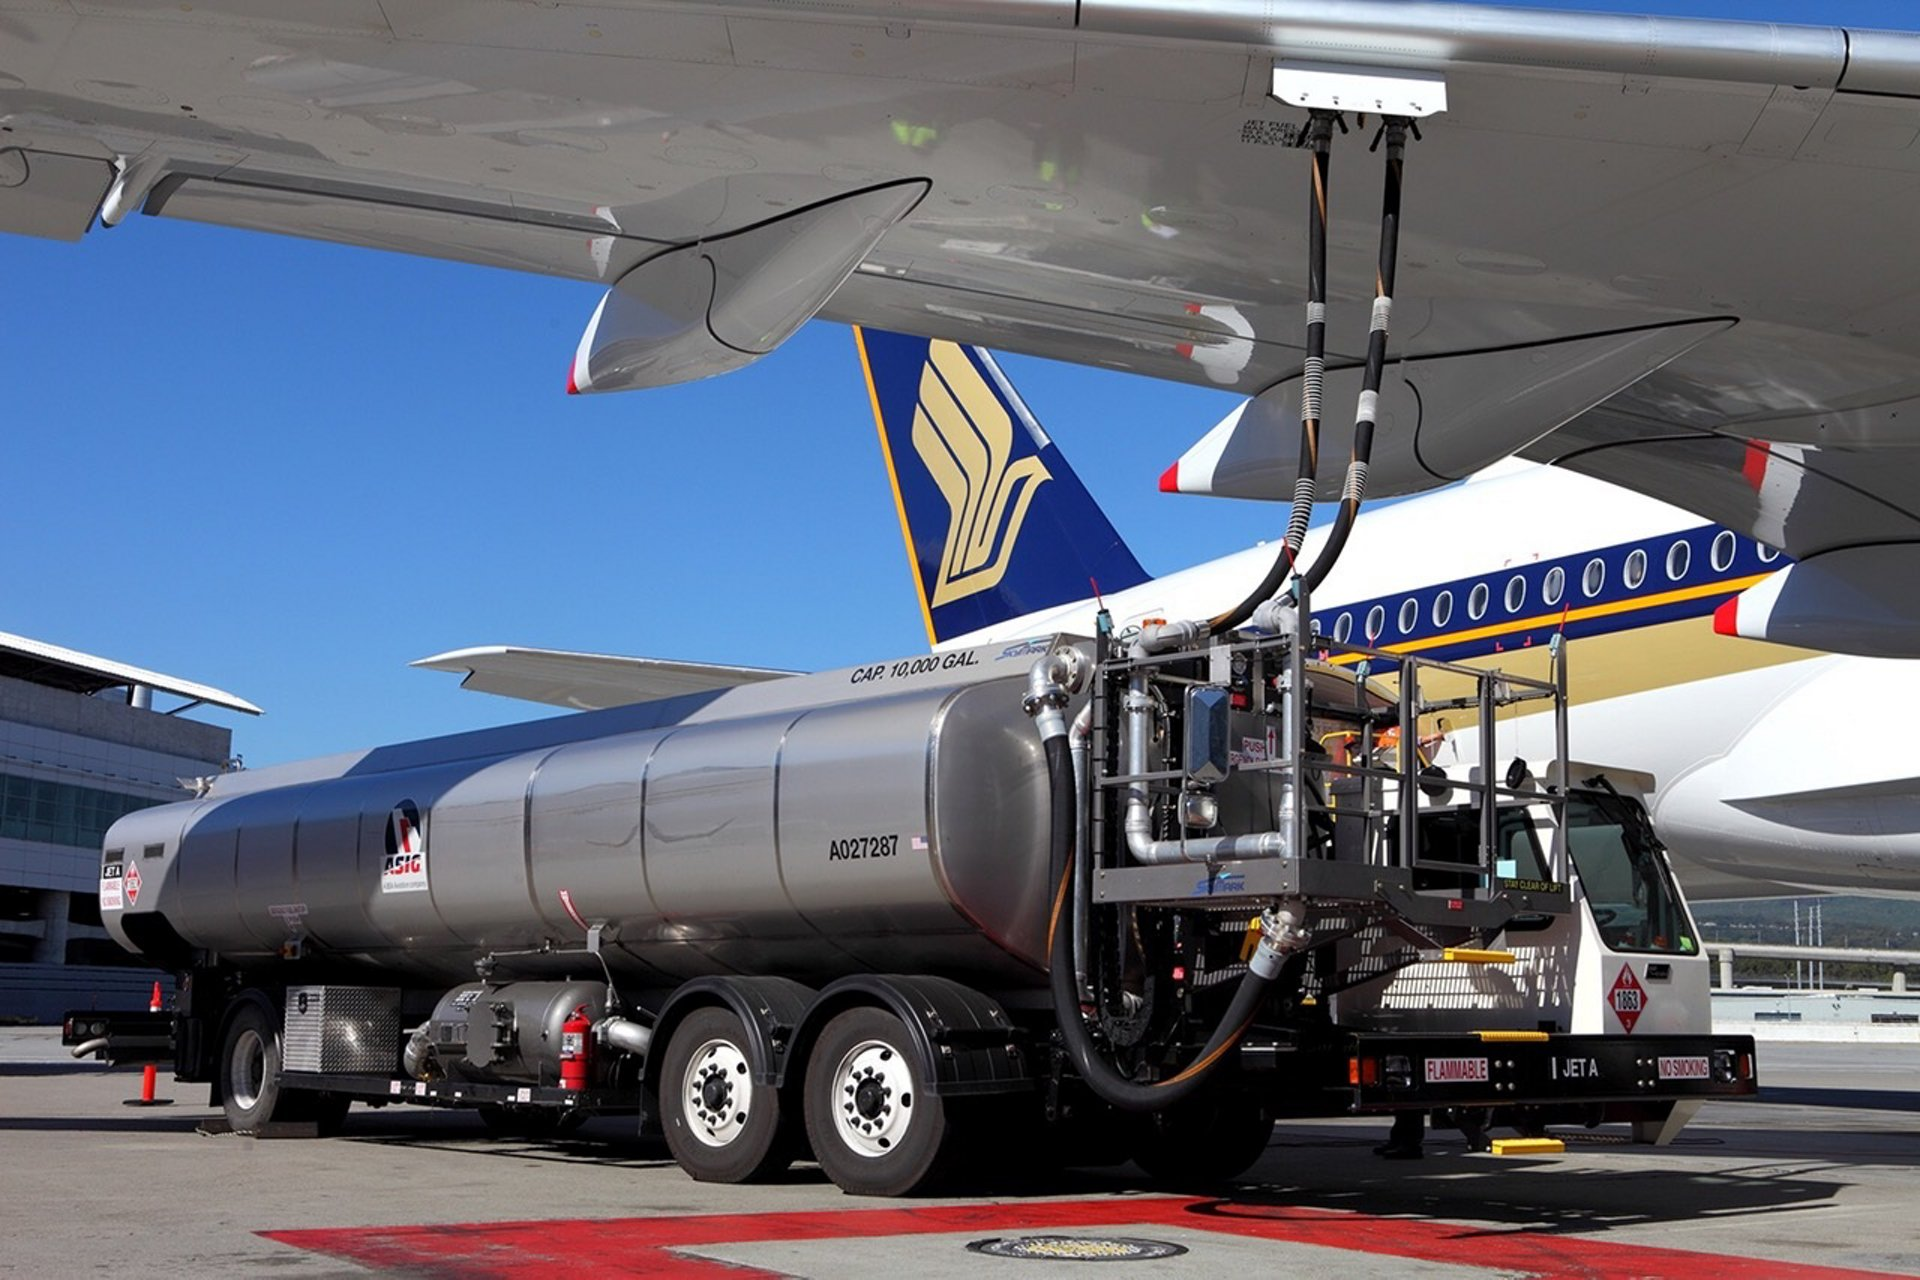 A350-900_Singapore Airlines biofuel flight preparation